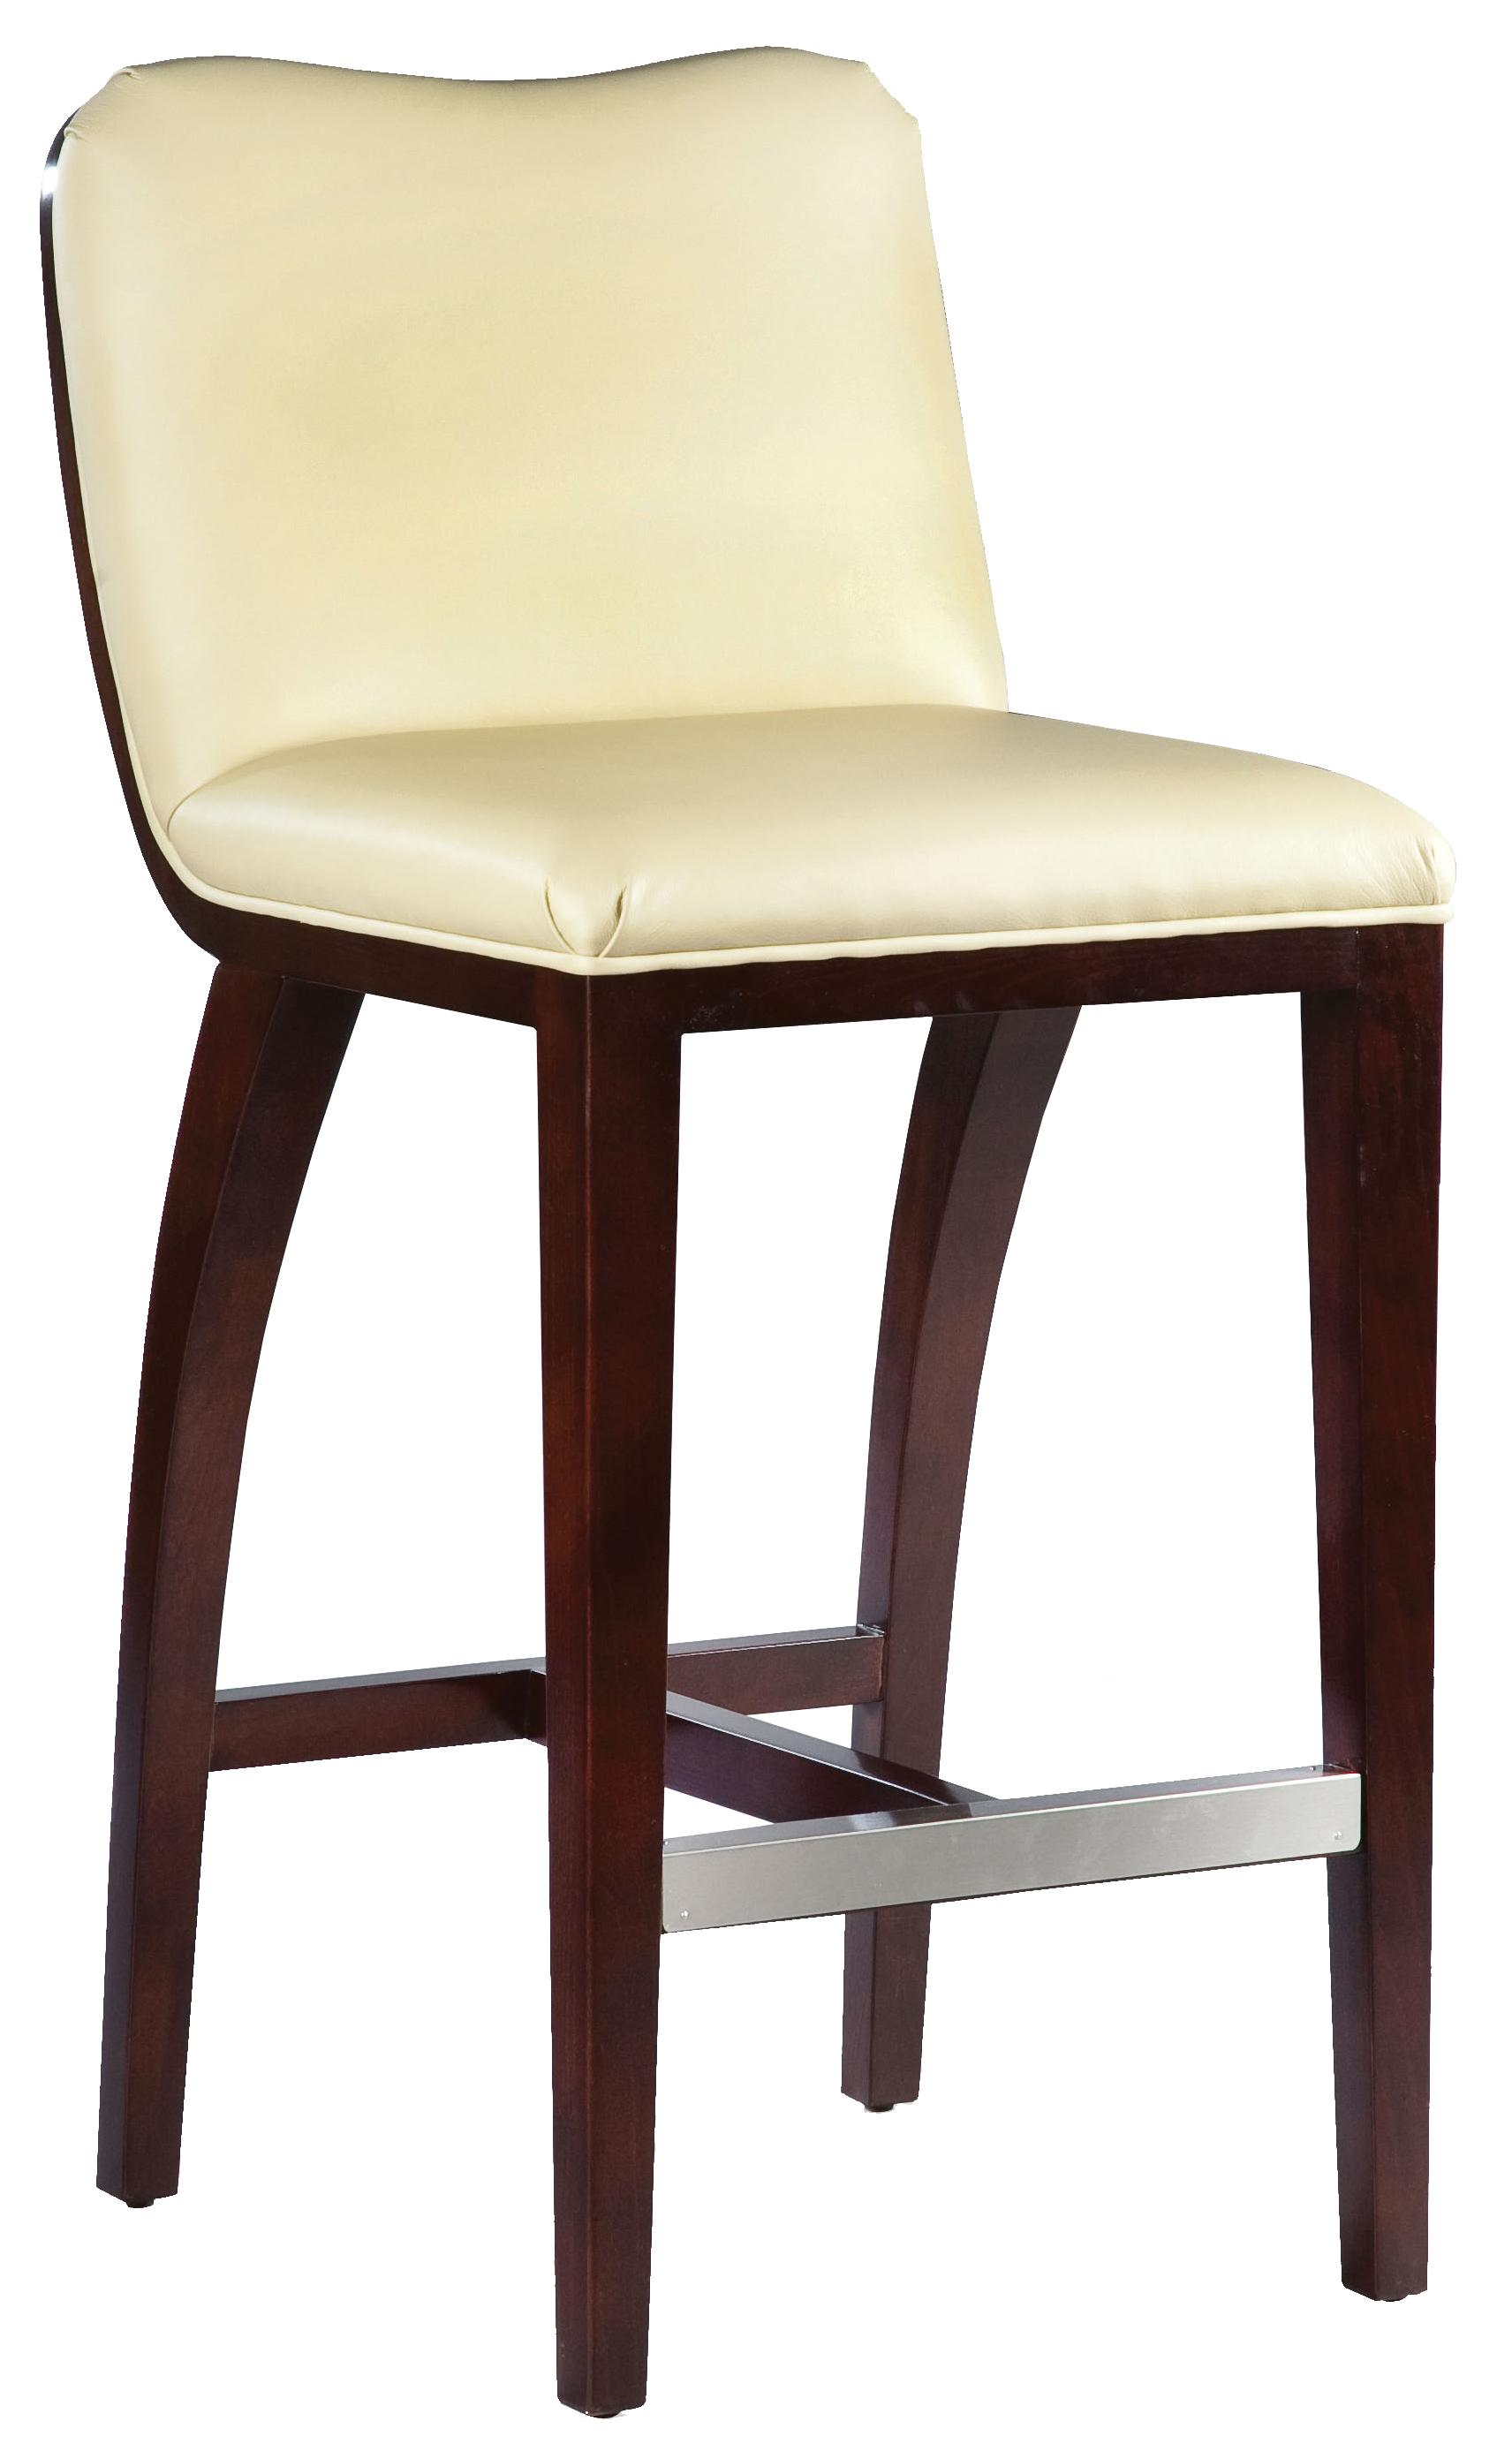 Fairfield Barstools  High End Bar Stool with Wood Accents - Item Number: 5075-07